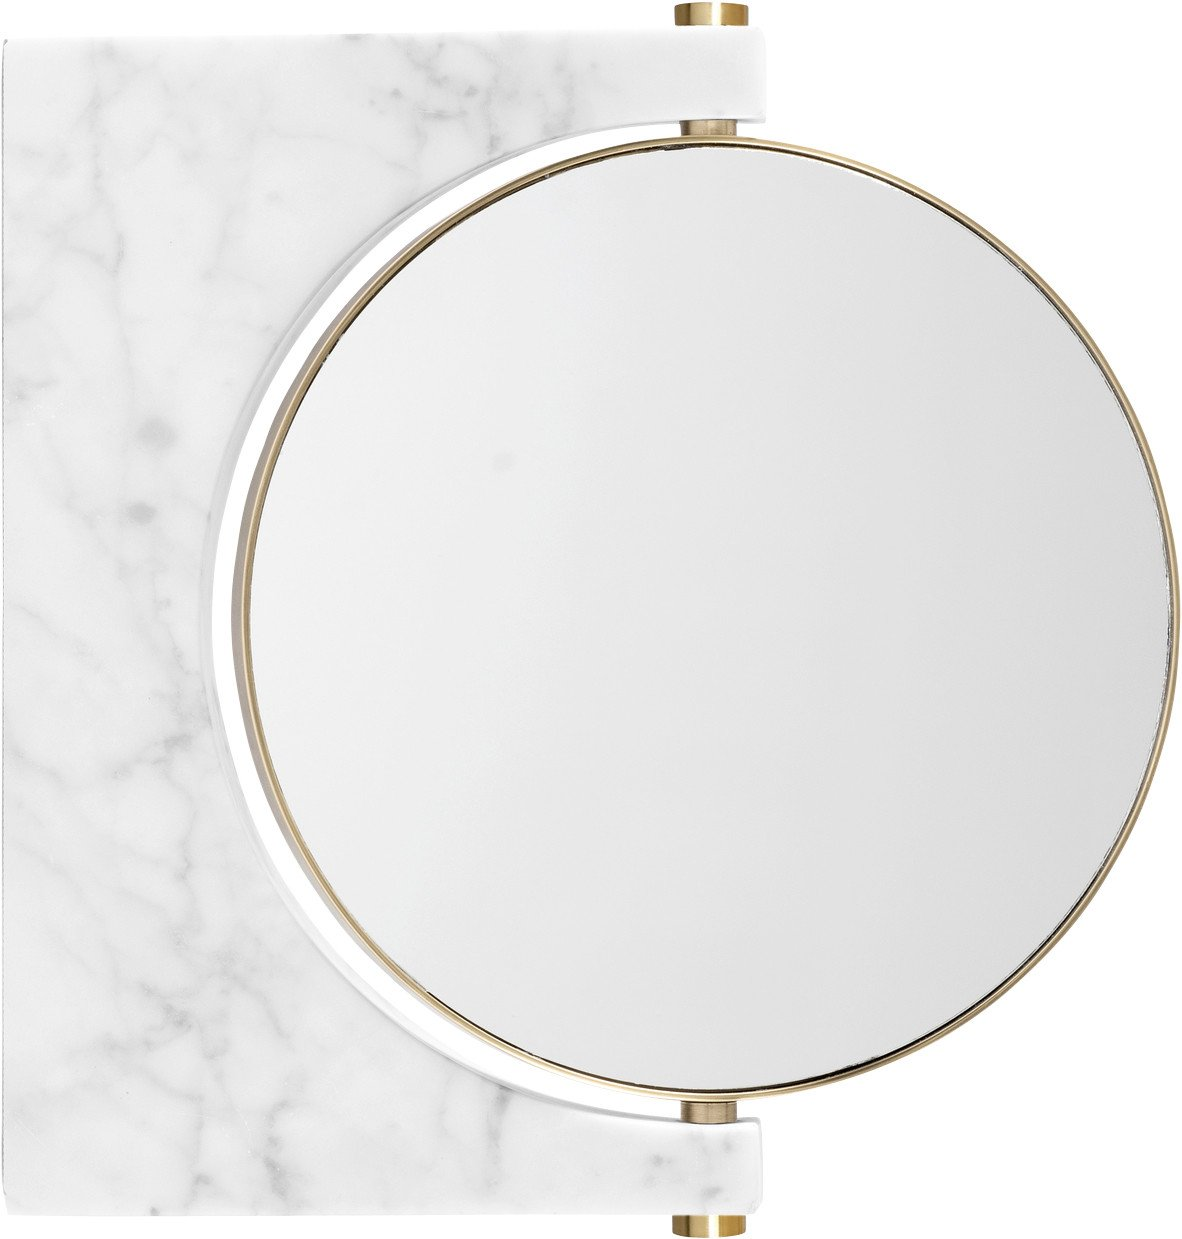 Pepe White Marble Wall Mirror by Studio Pepe for Menu